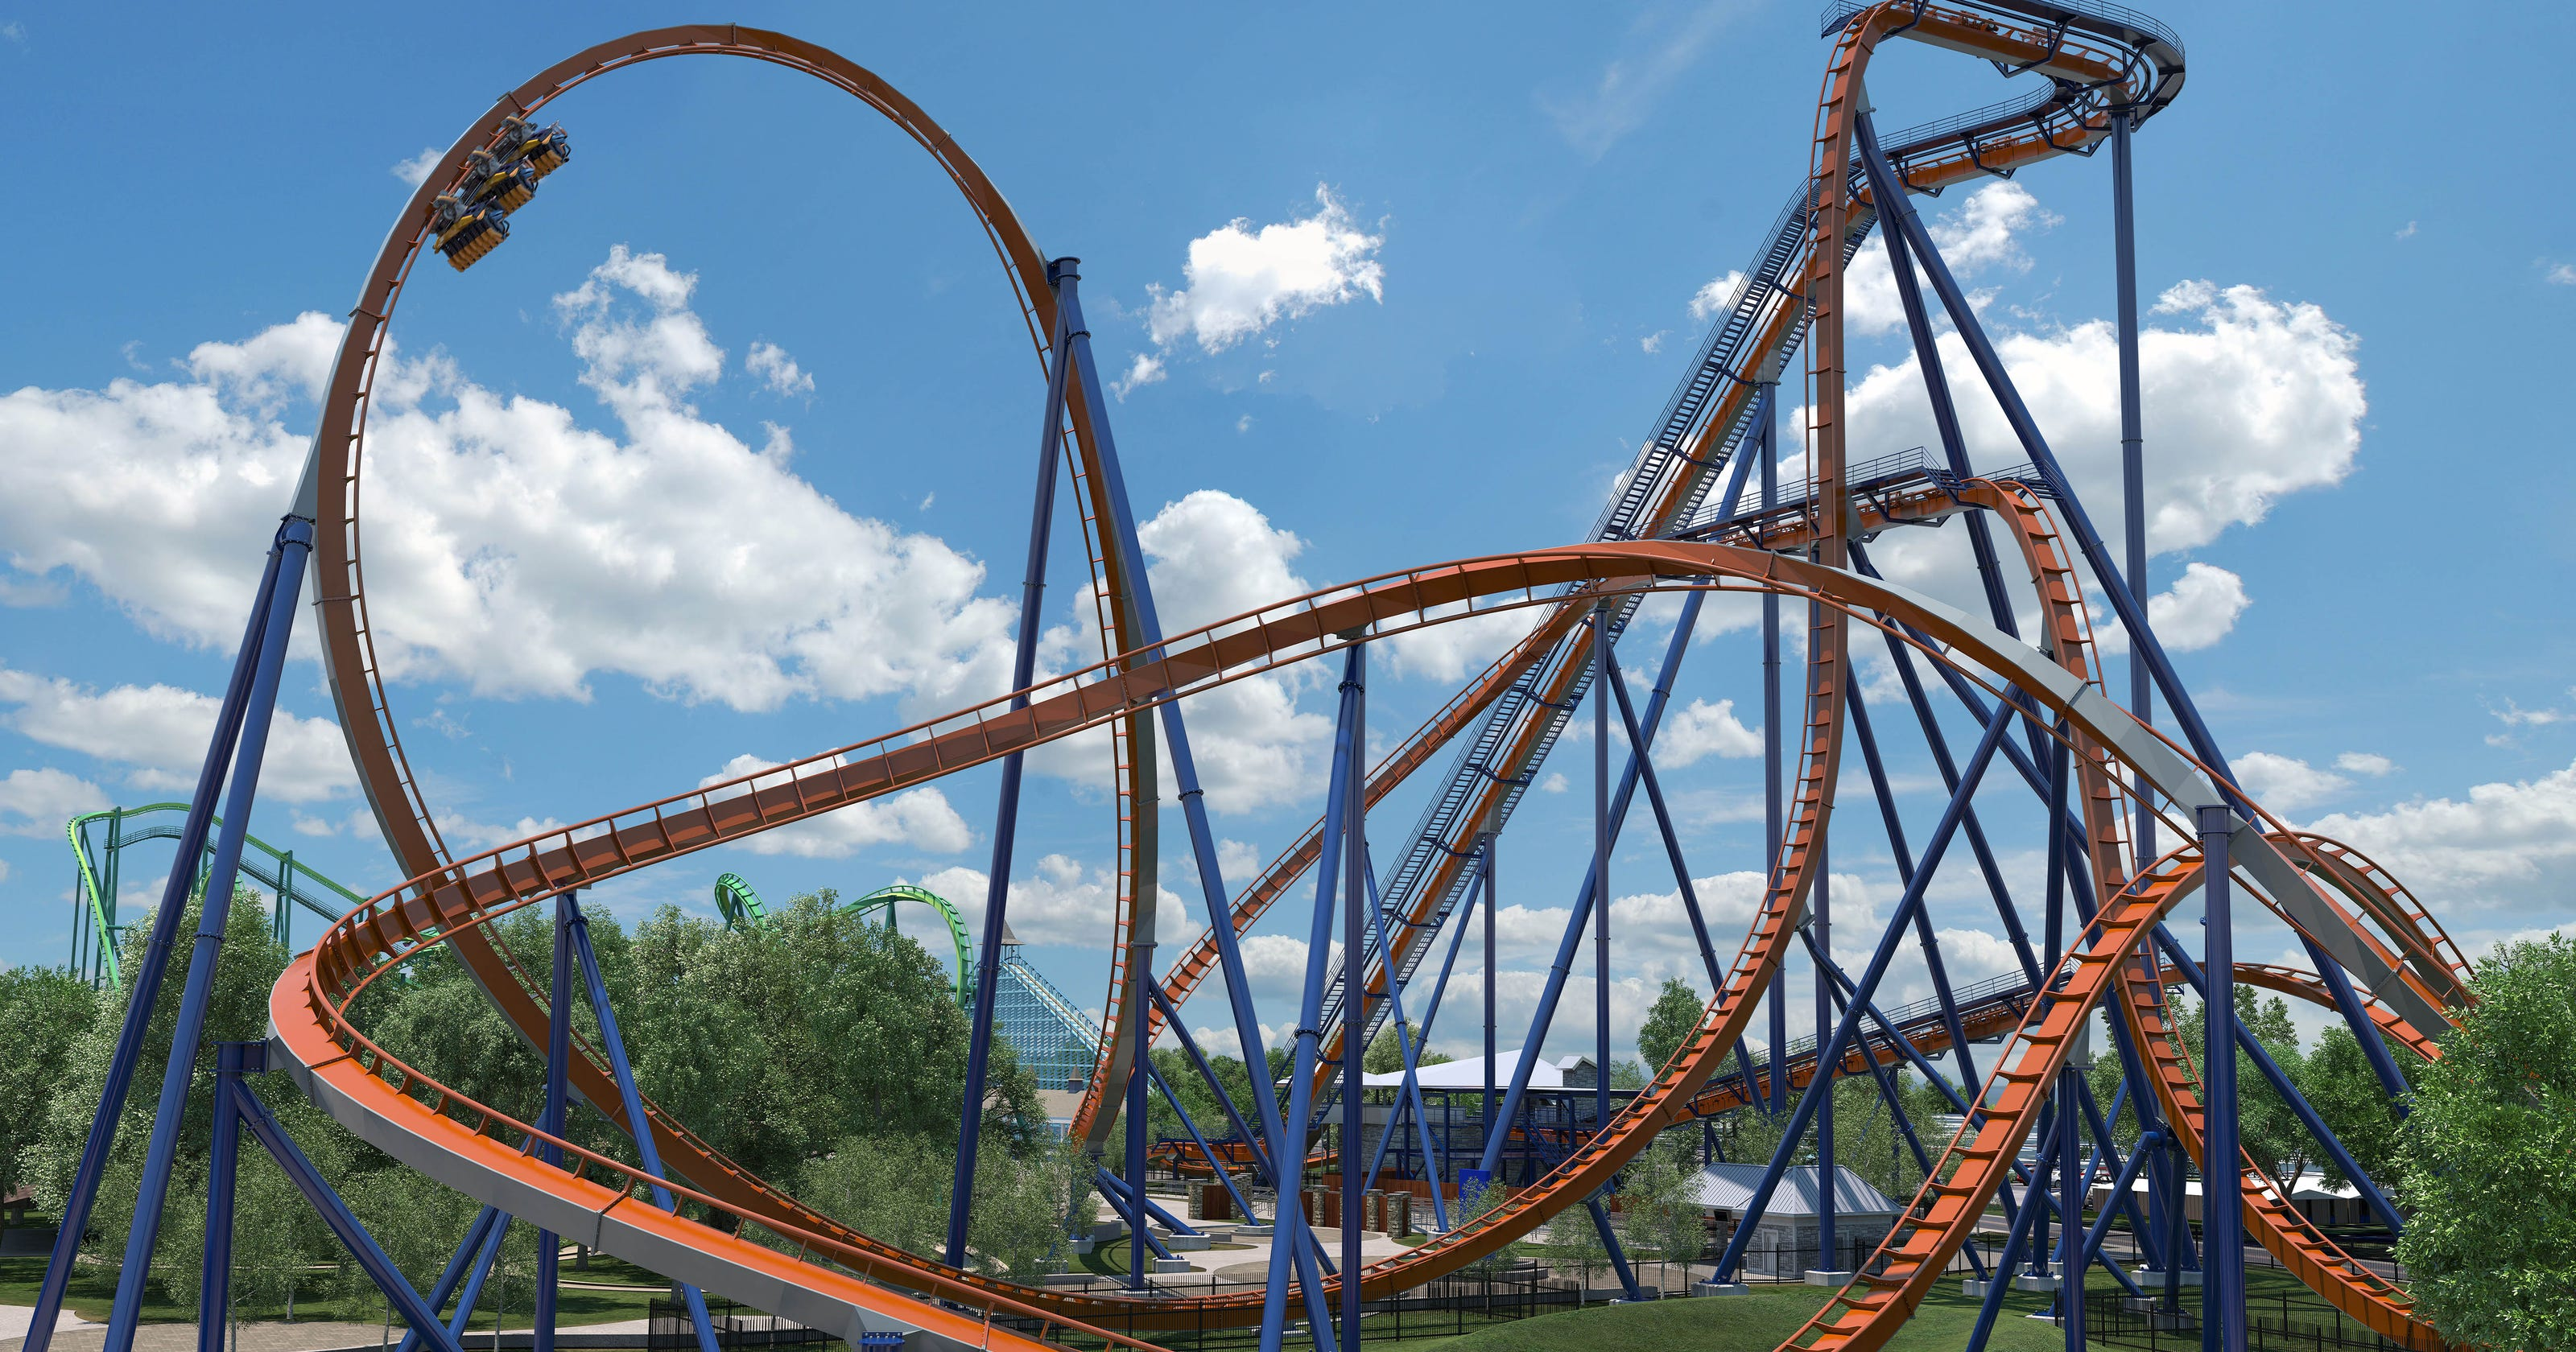 cedar point chat Browse 470 cedar point hotels & save money read user reviews of over 590,000 properties worldwide no expedia cancellation fee.